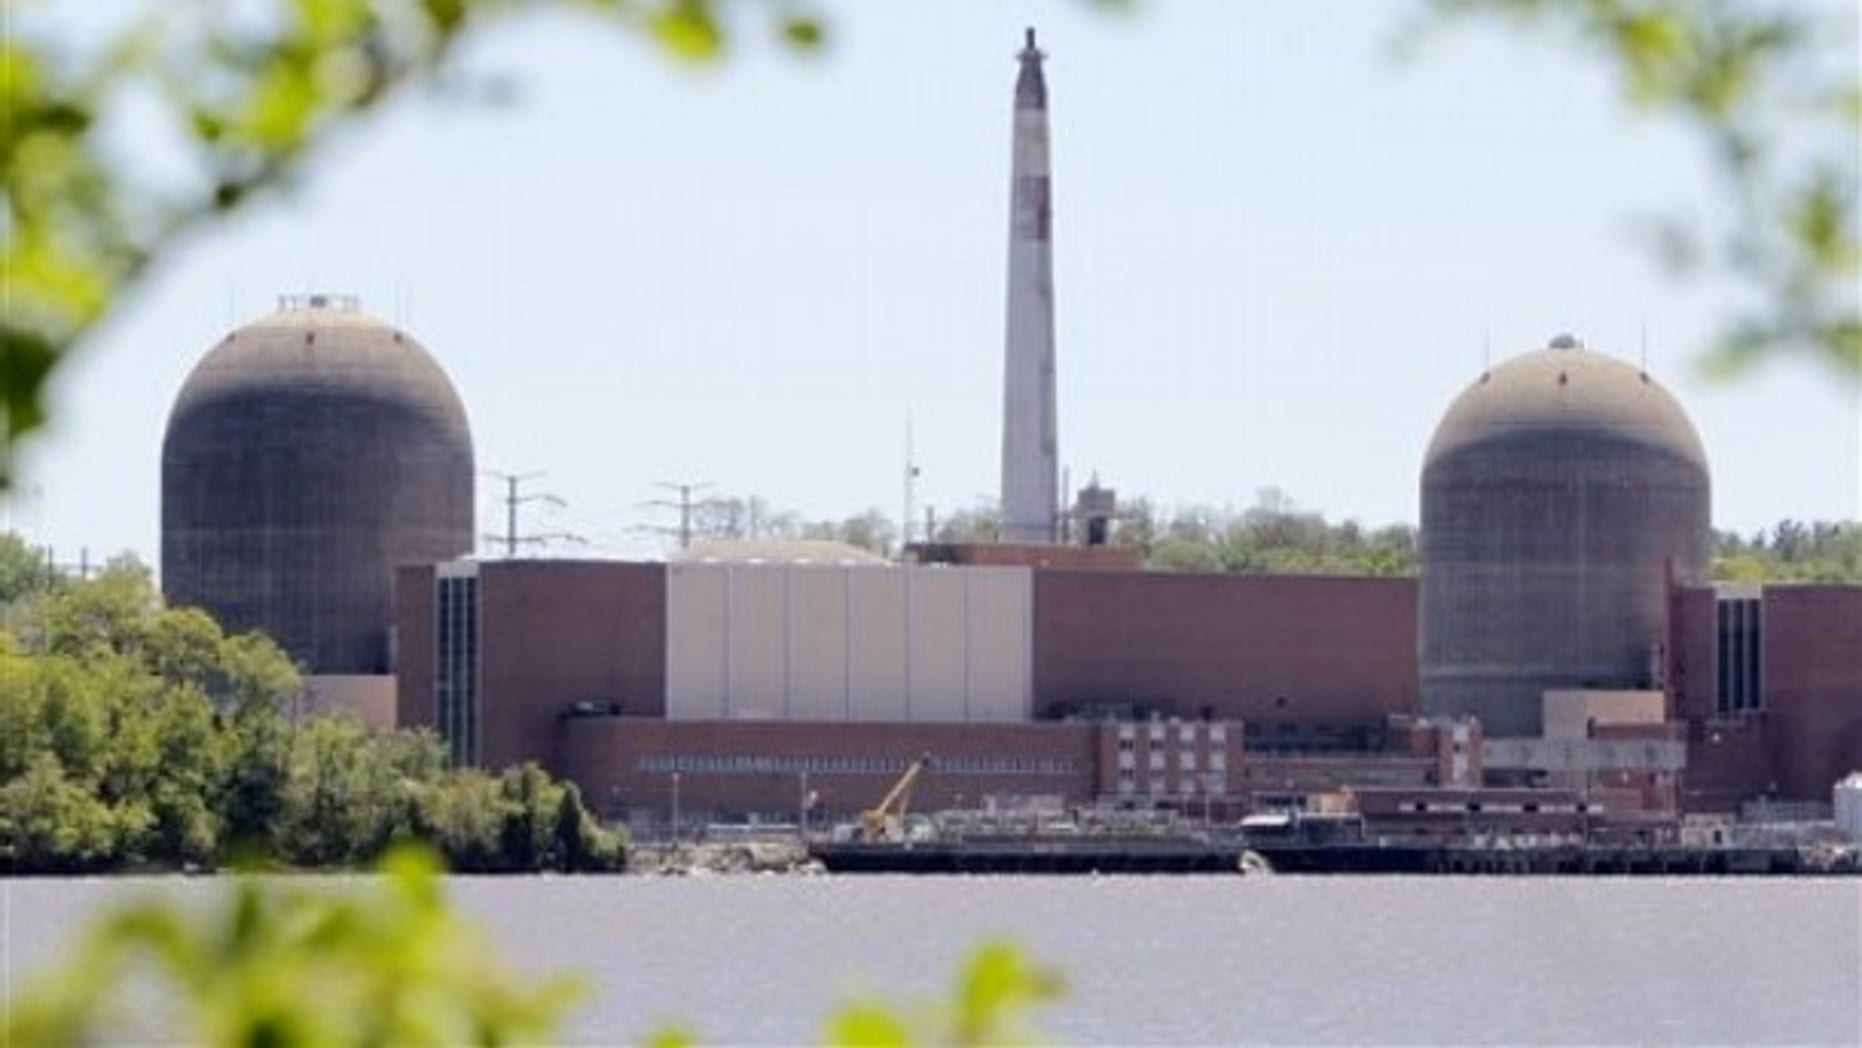 In May 10, 2011 file photo, the nuclear power plant at Indian Point in Buchanan, N.Y., is seen with the Hudson River in the foreground.